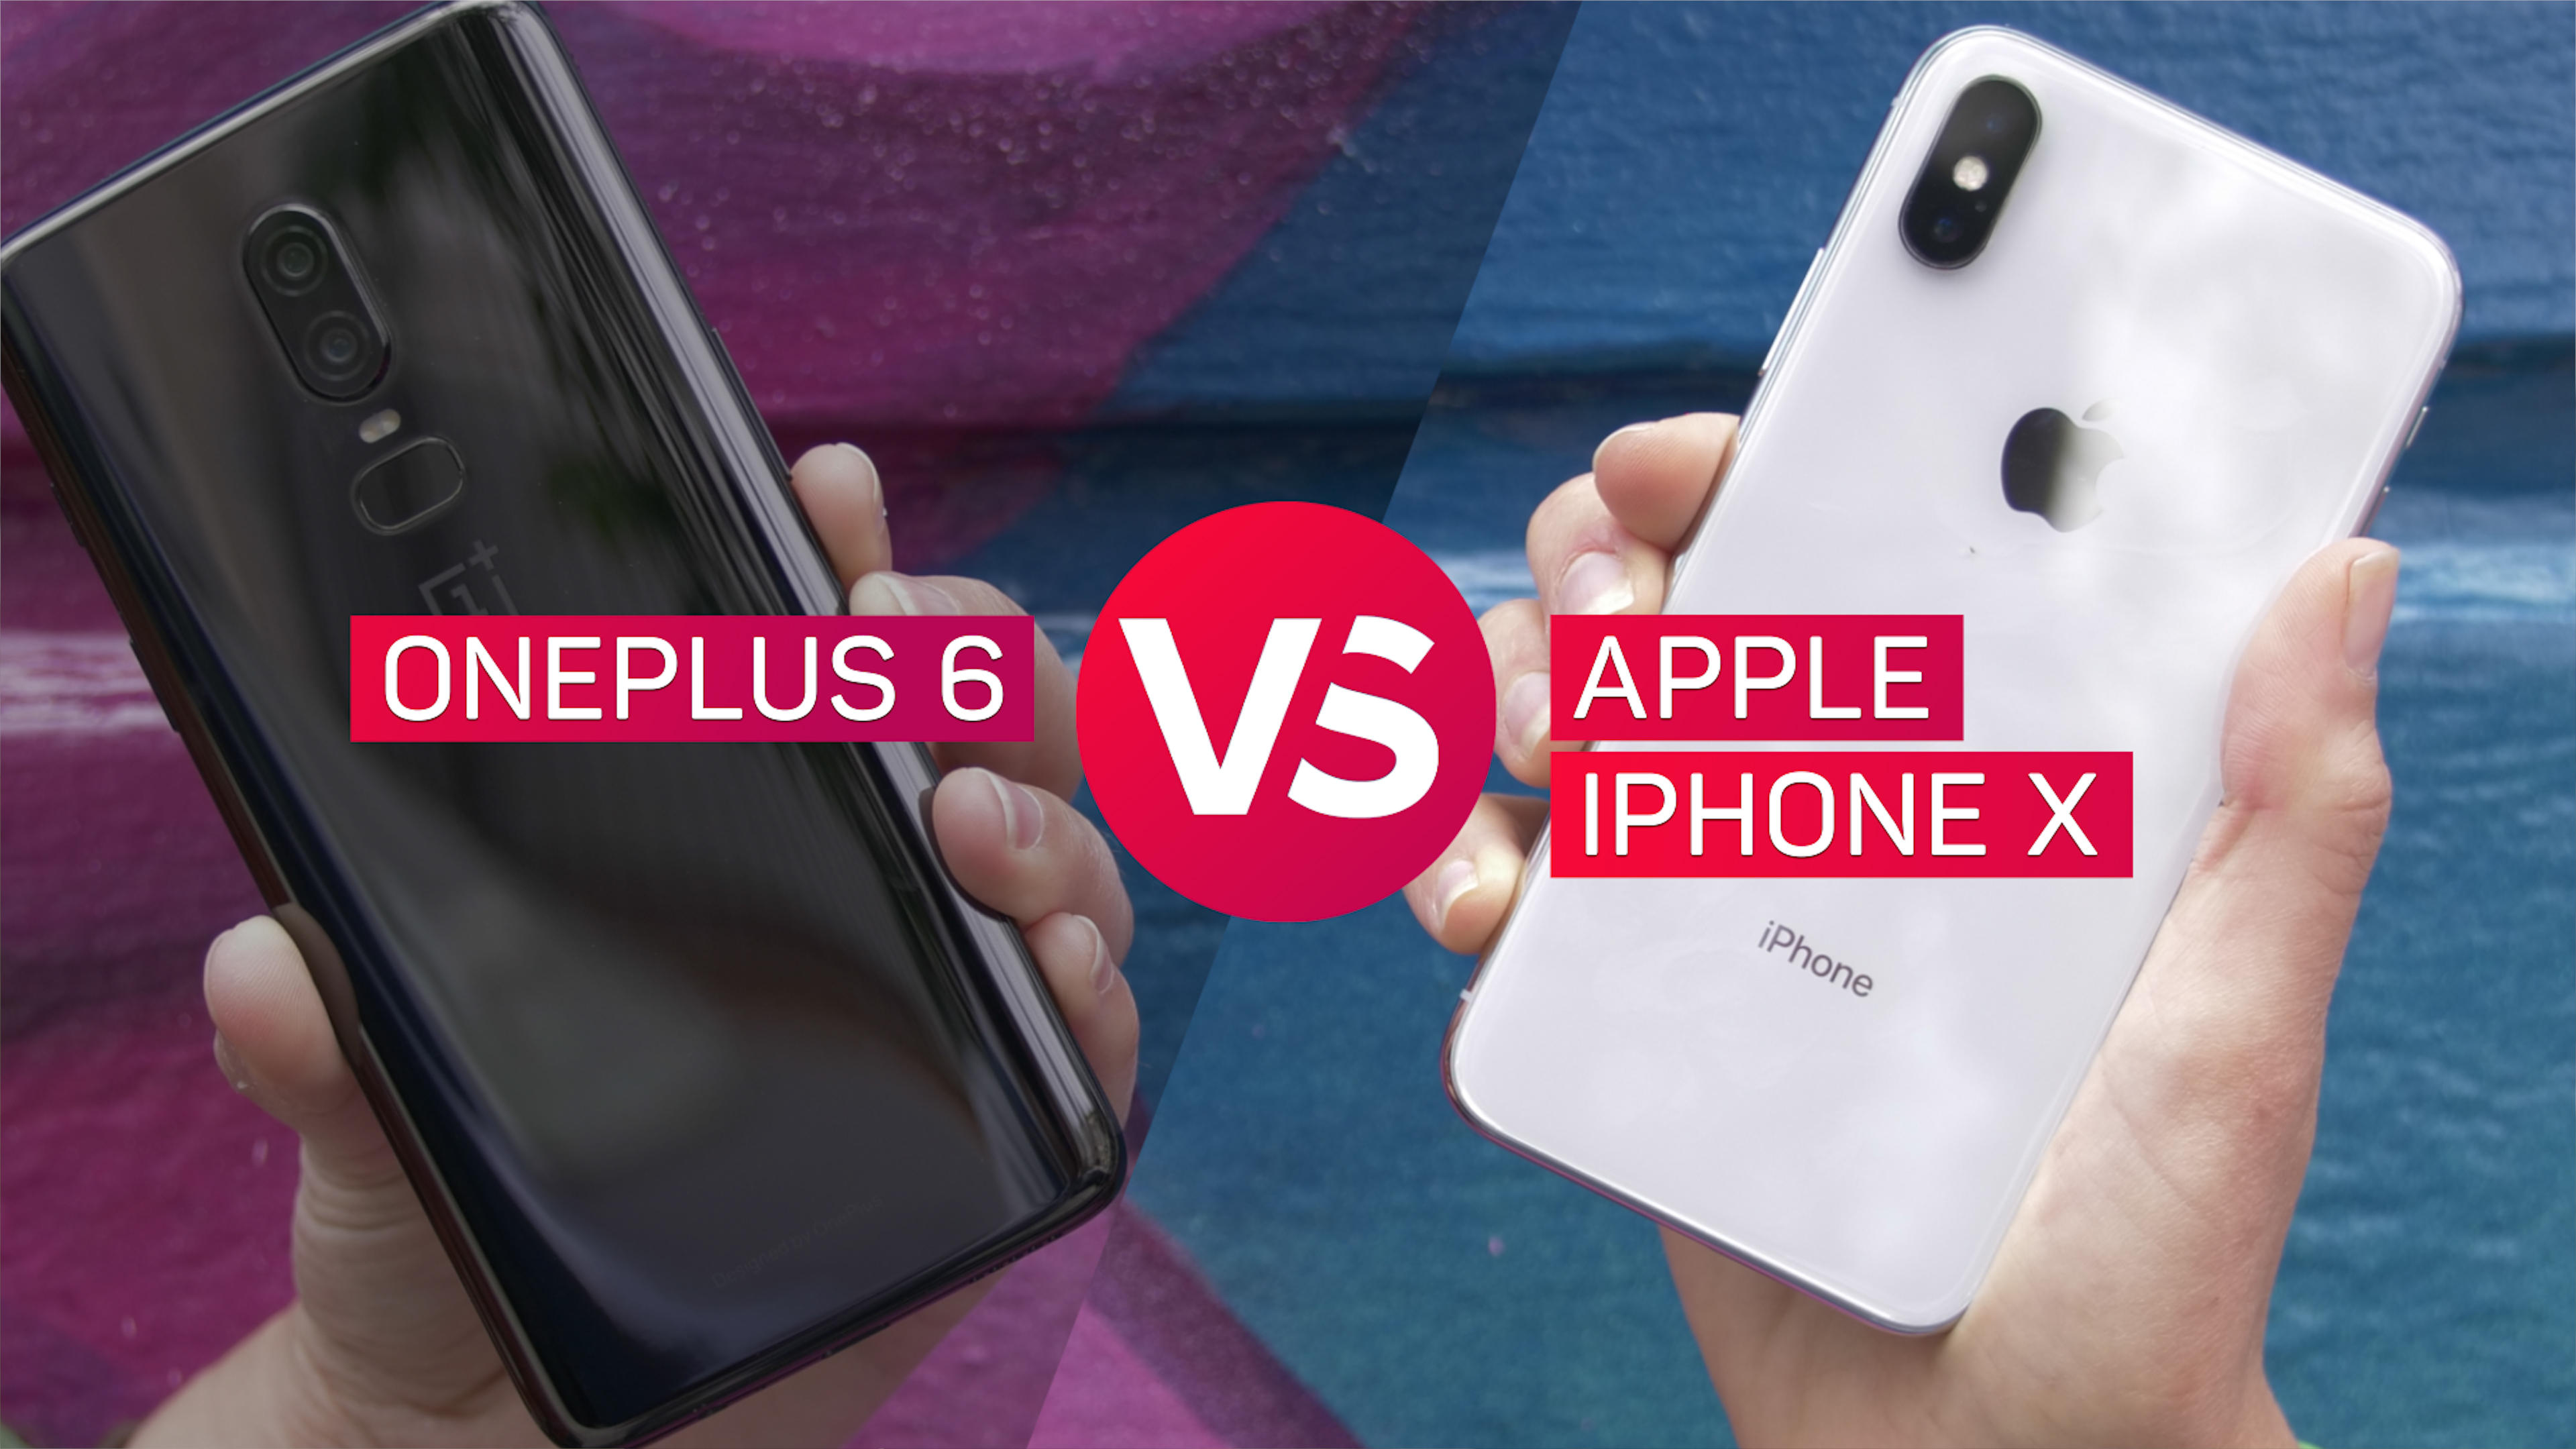 Video: Camera showdown: iPhone X vs OnePlus 6